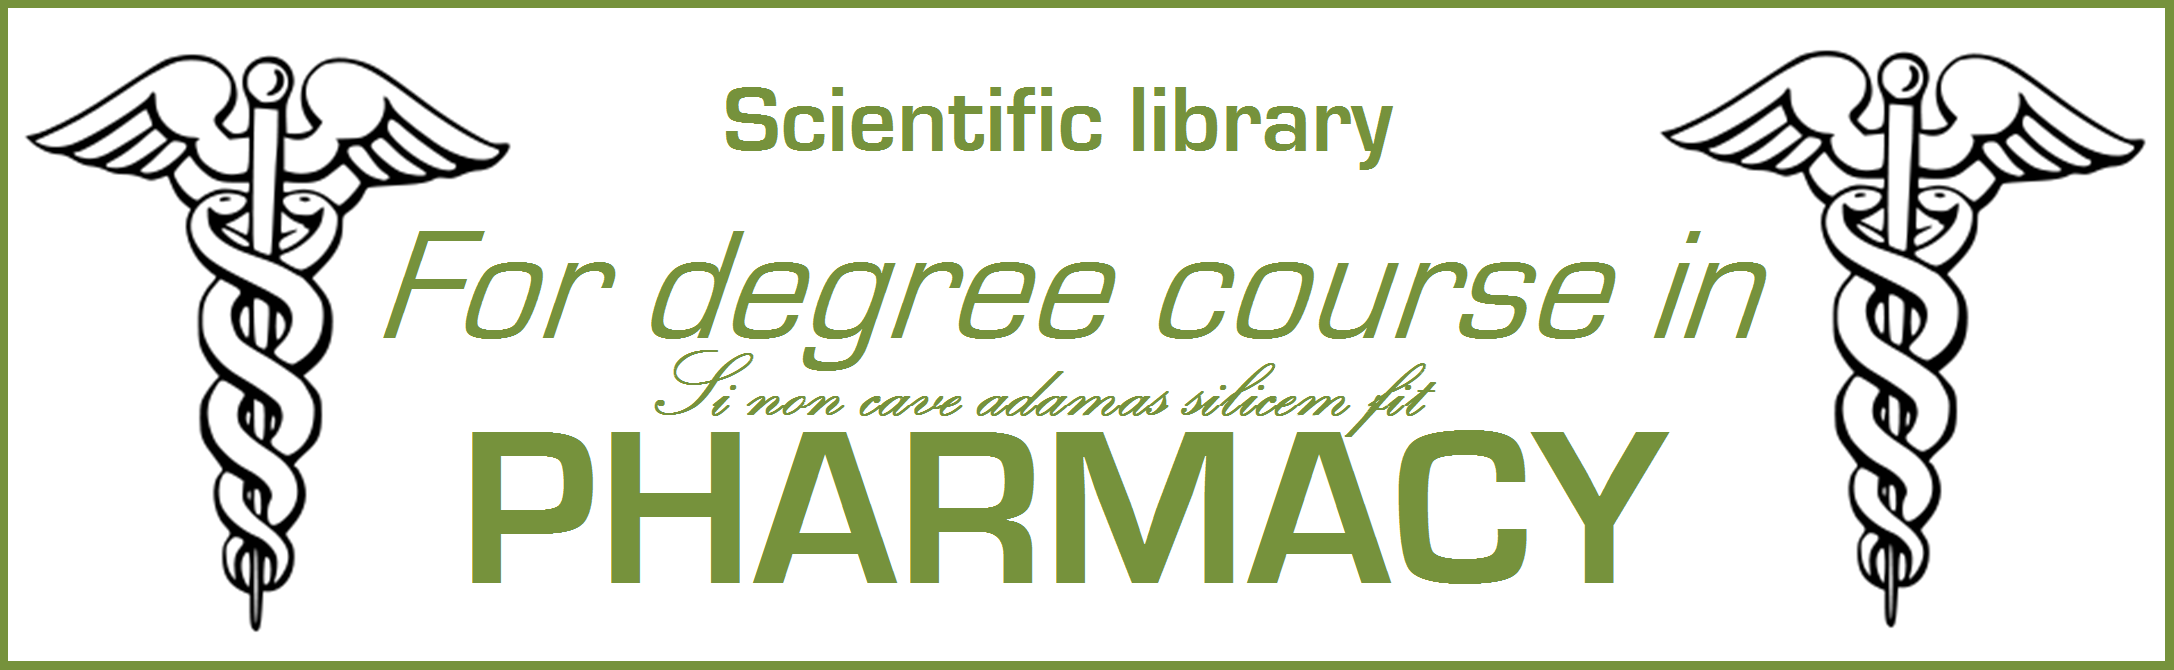 Scientific library - For degree course in PHARMACY